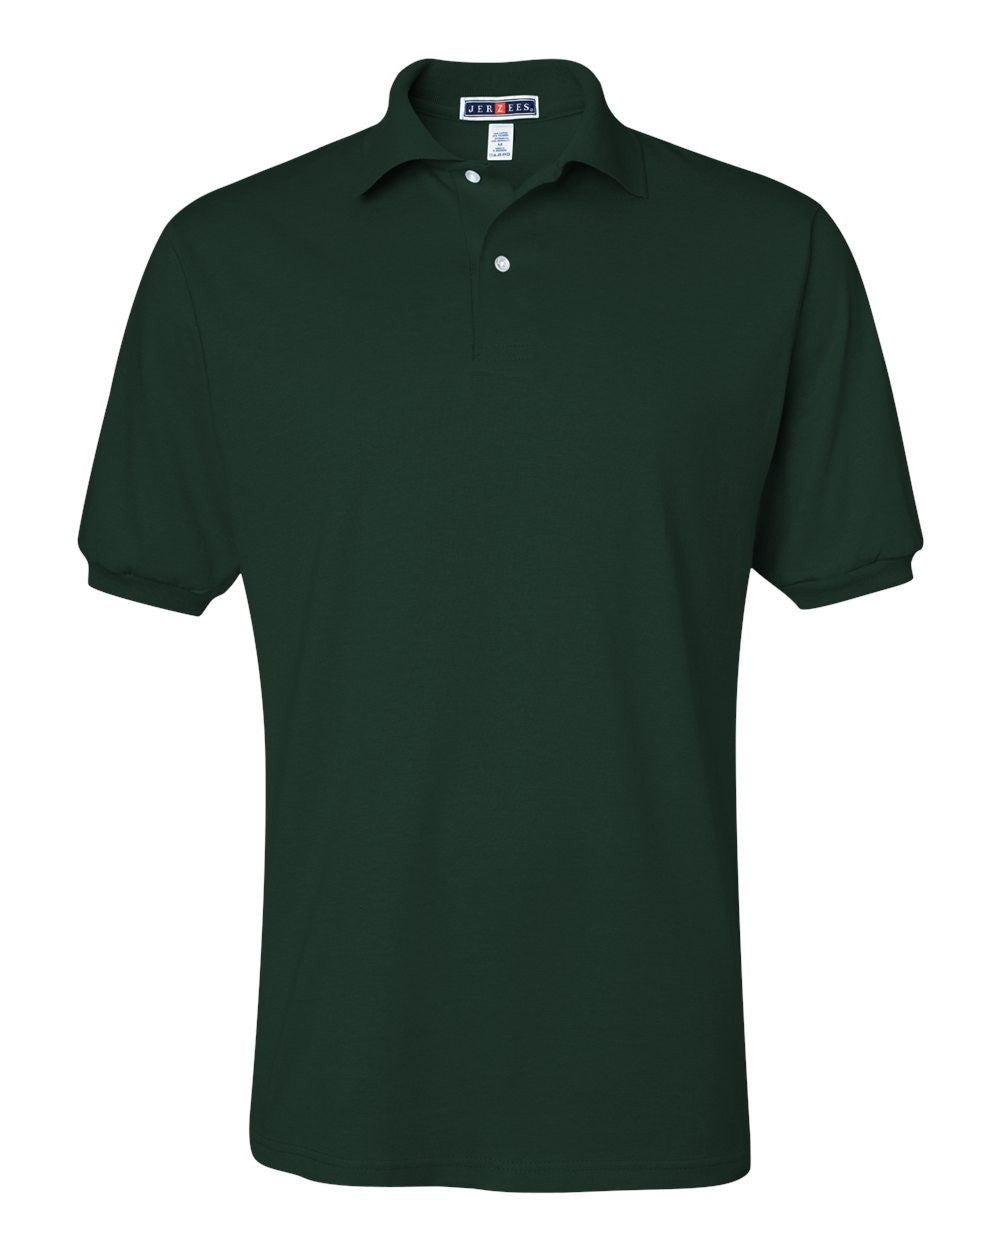 Mens Spot Shield Polos by Jerseez